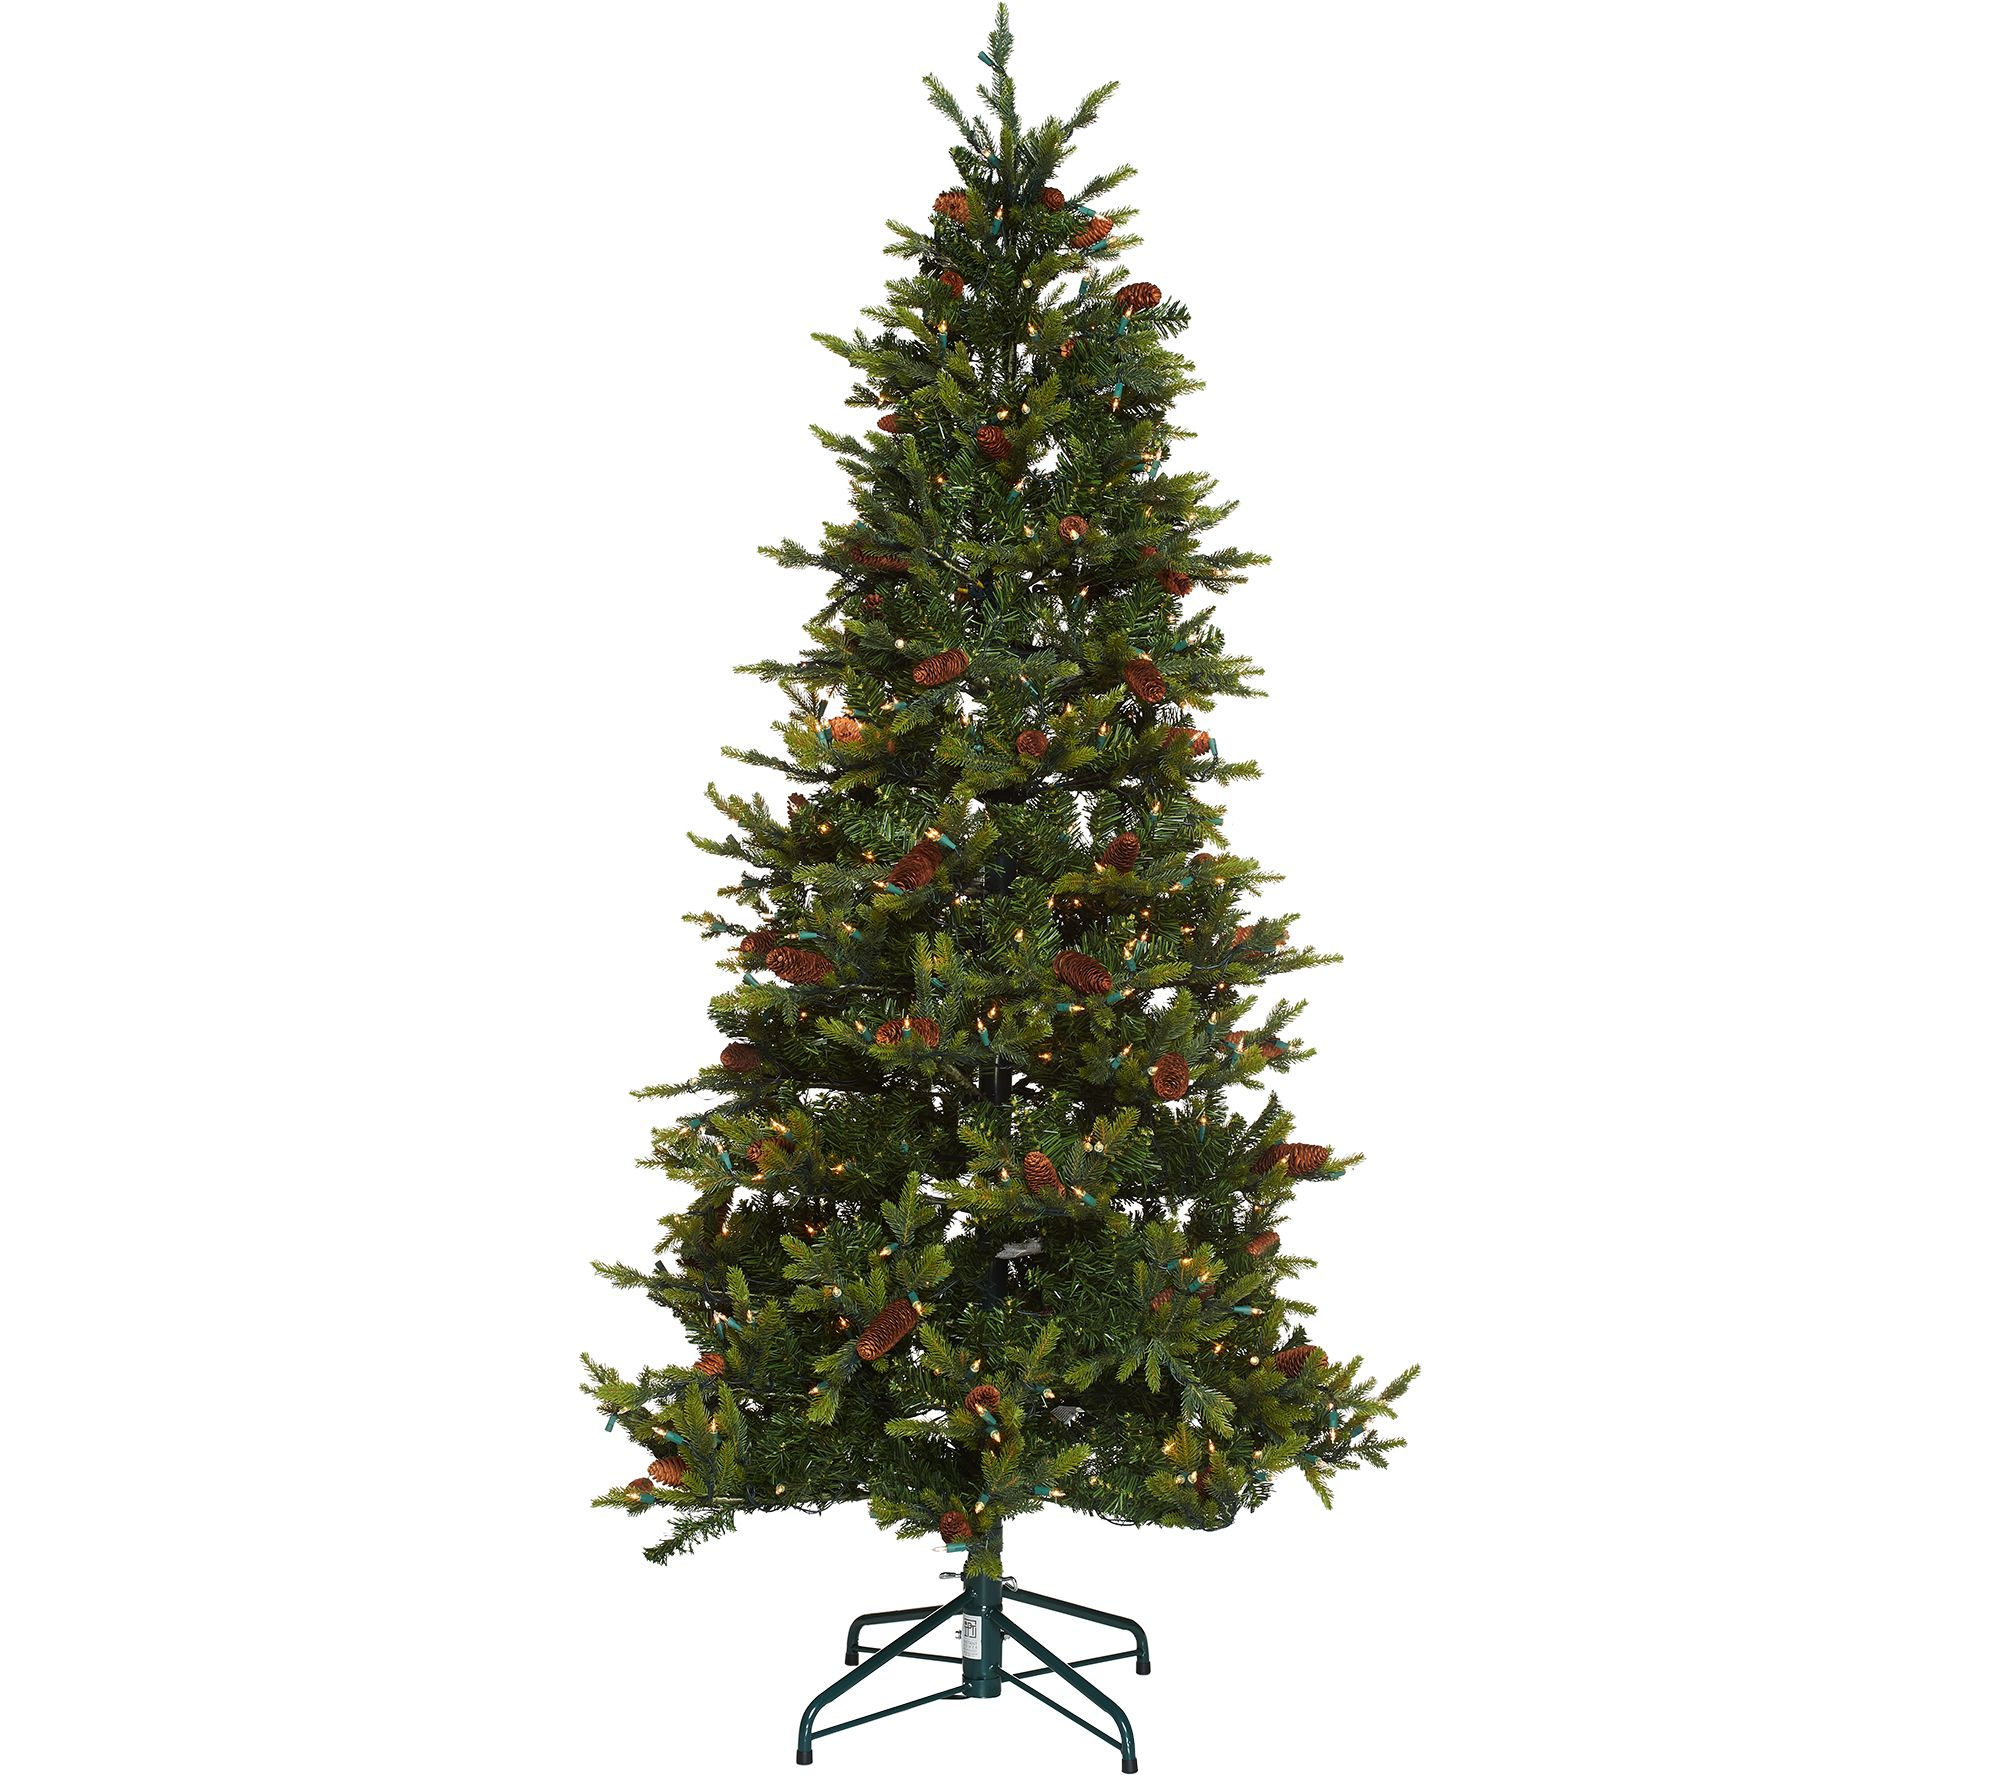 bethlehem lights 75 heritage spruce christmas tree winstant power h208556 - Fully Decorated Christmas Trees For Sale